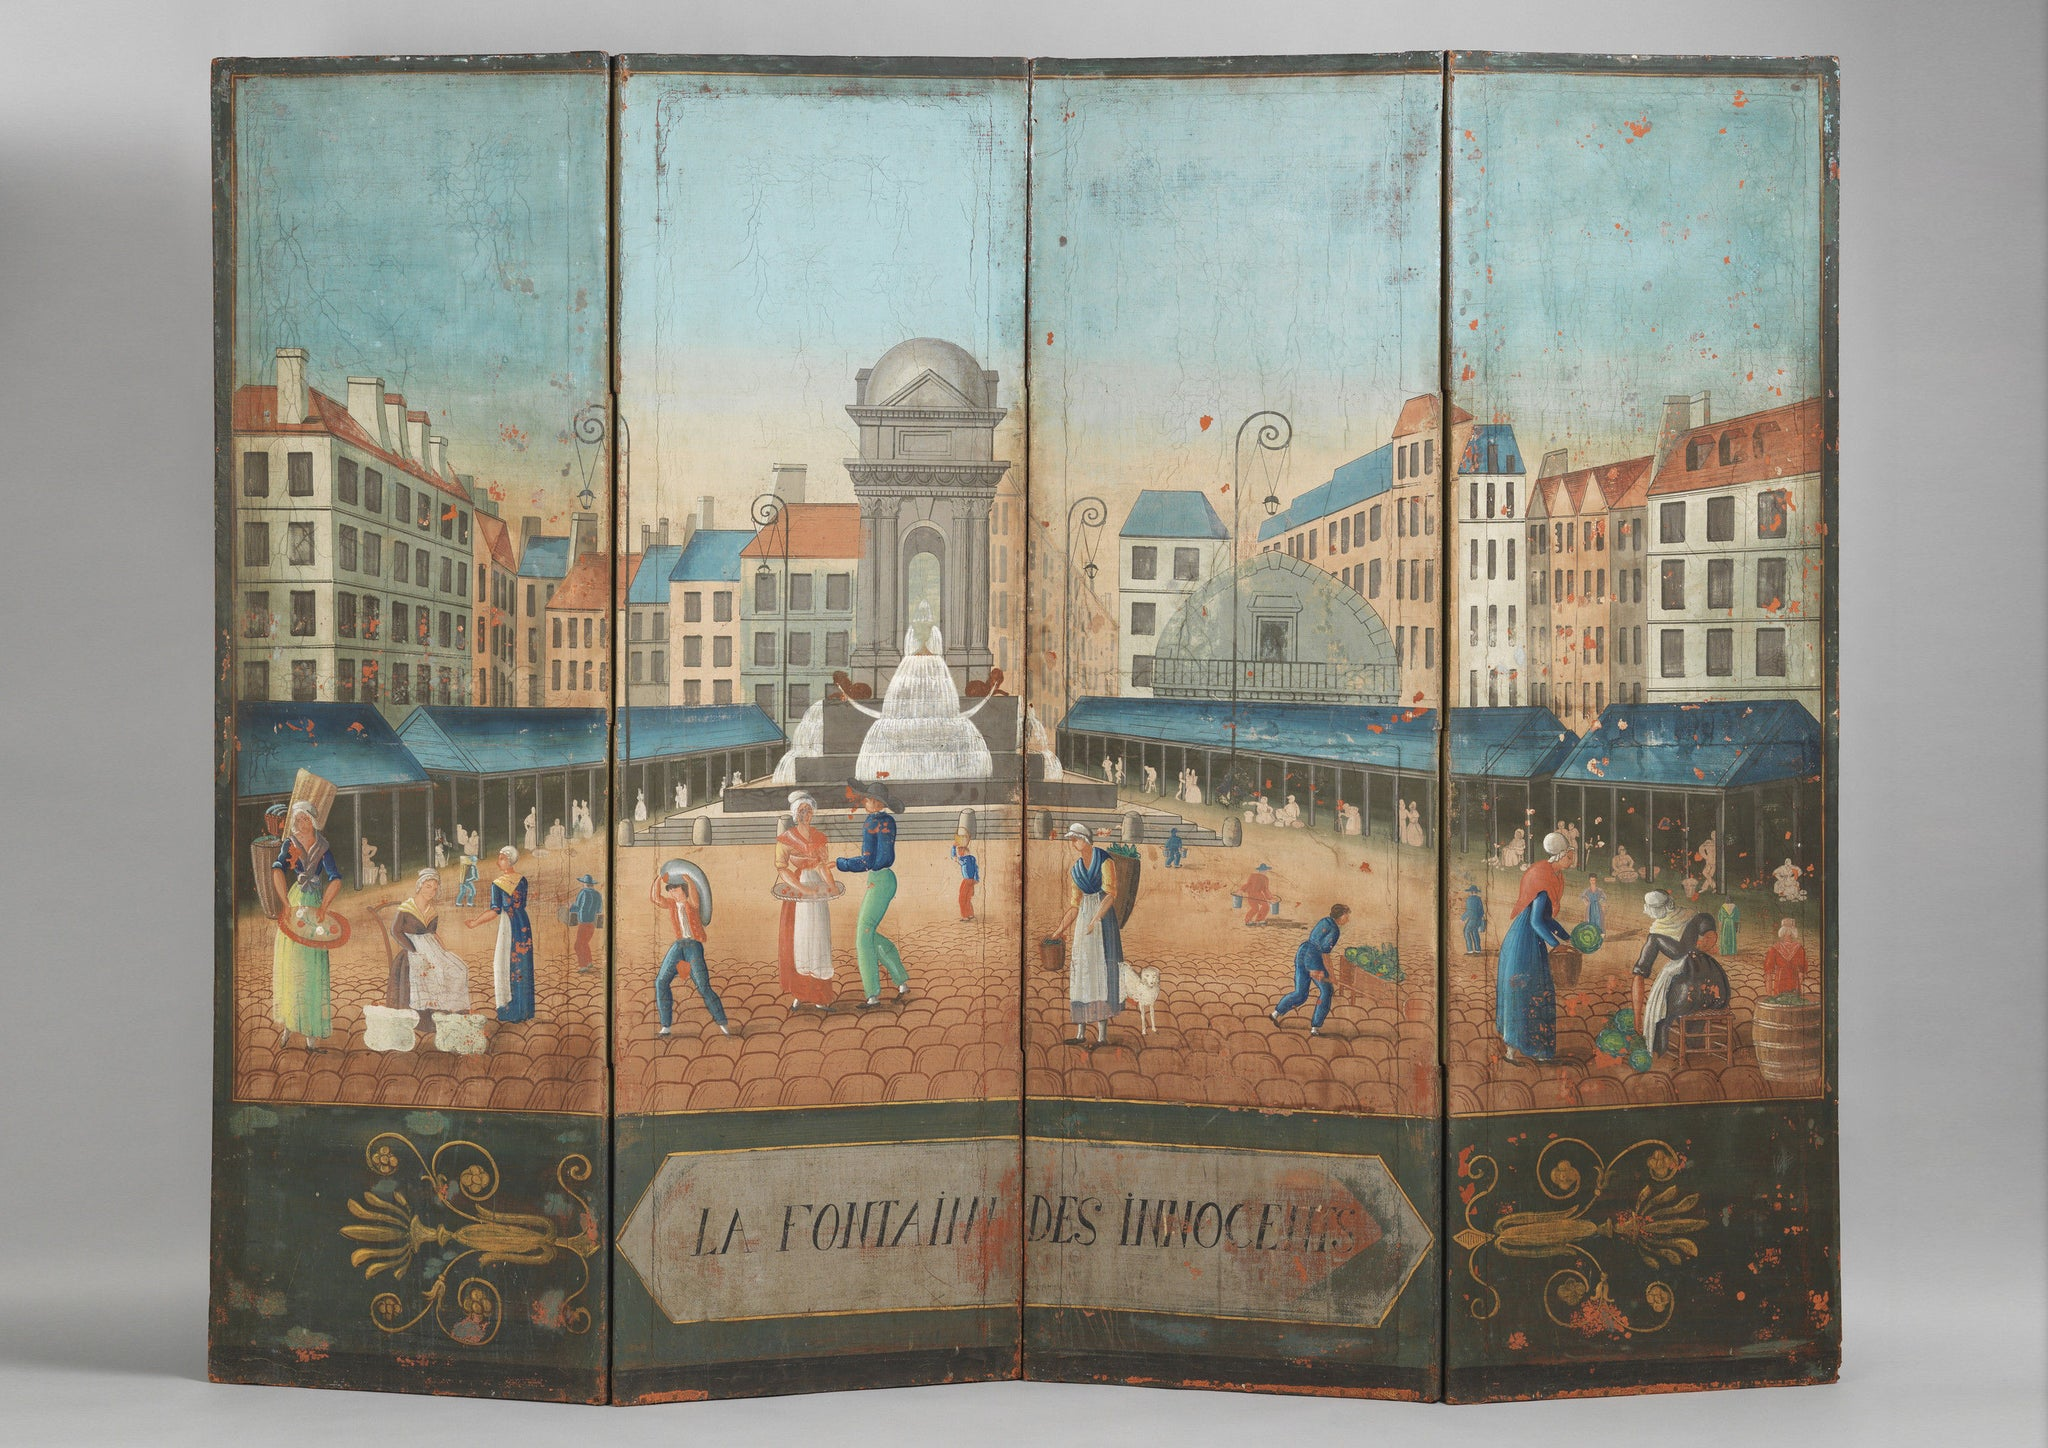 Naive Folk Art Decorated Screen 'La Fontaine Des Innocents'